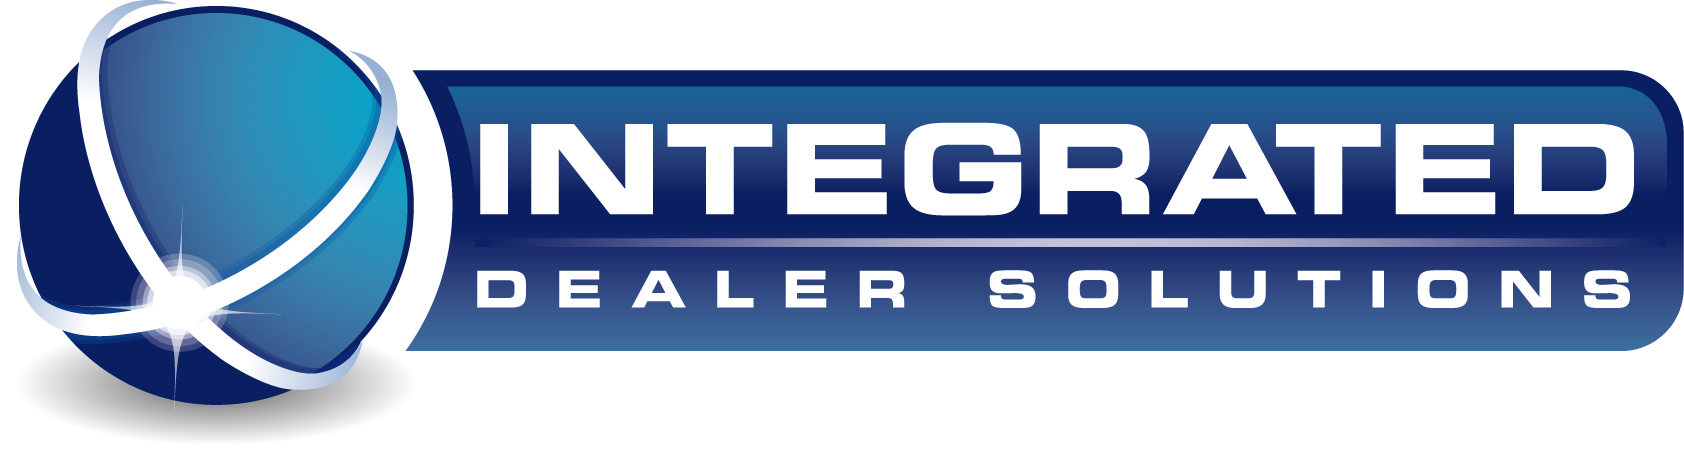 Integrated Dealer Solutions